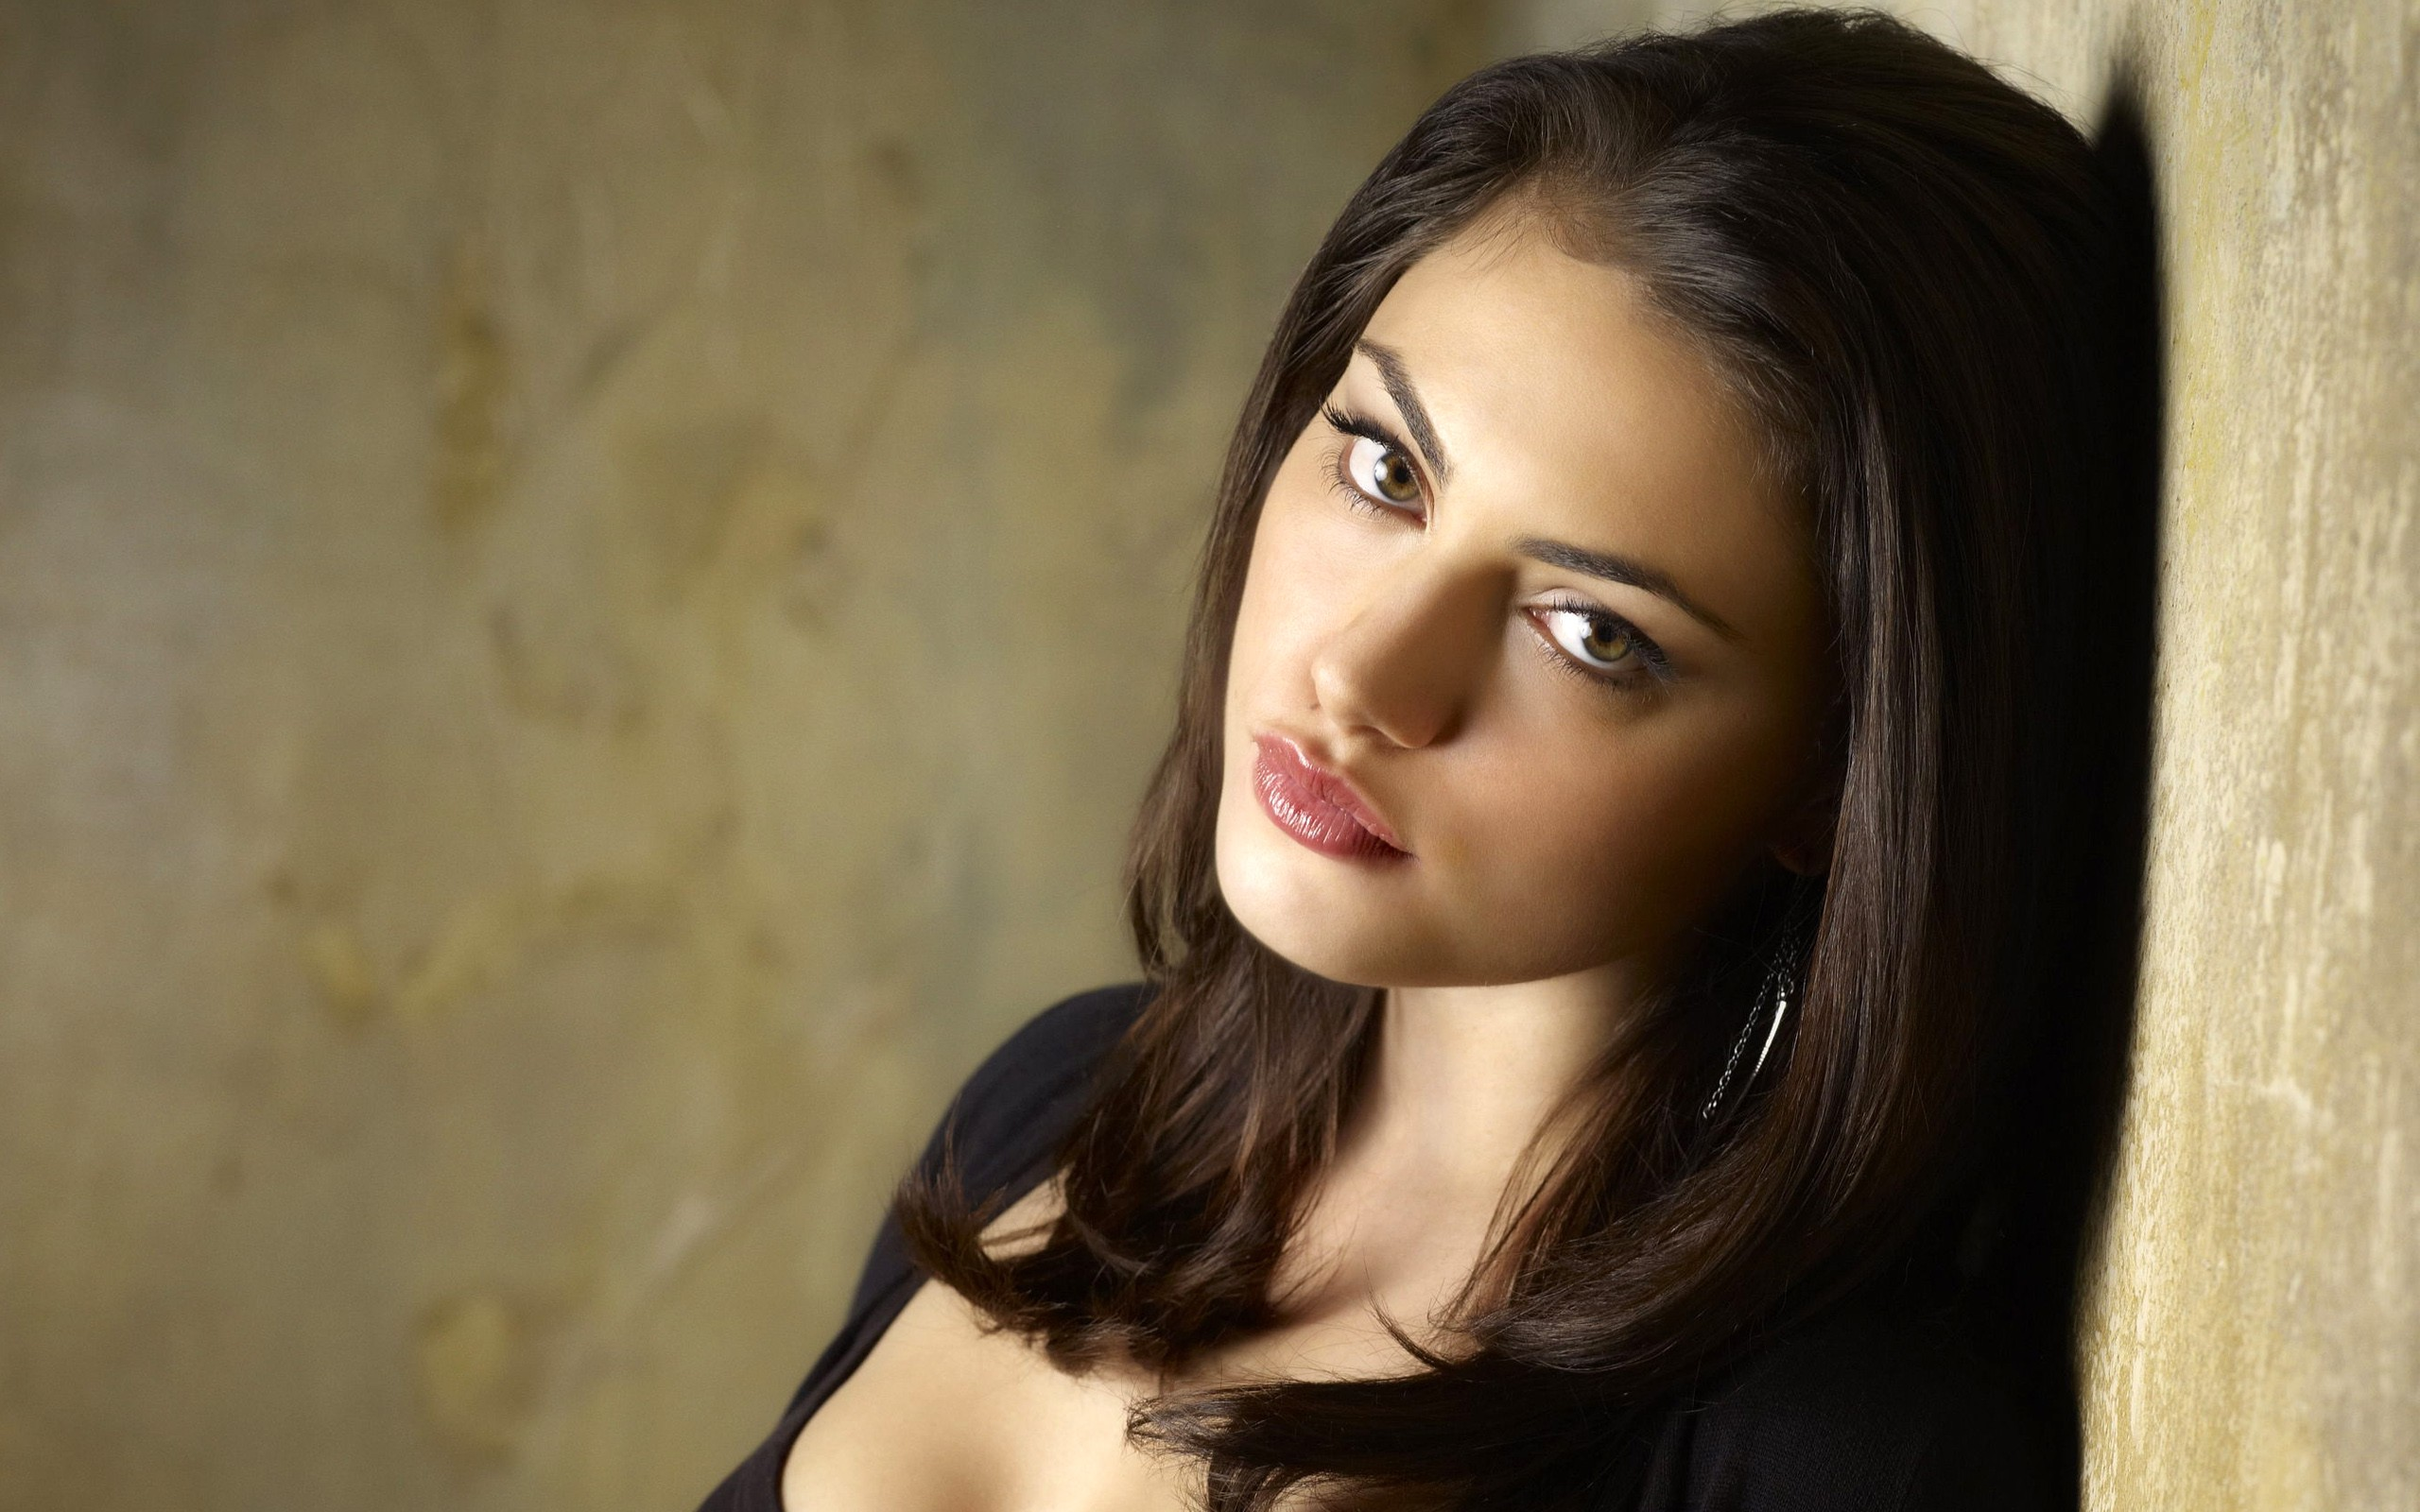 Ultra Hd Wallpapers Cars Phoebe Tonkin 3 Hd Celebrities 4k Wallpapers Images